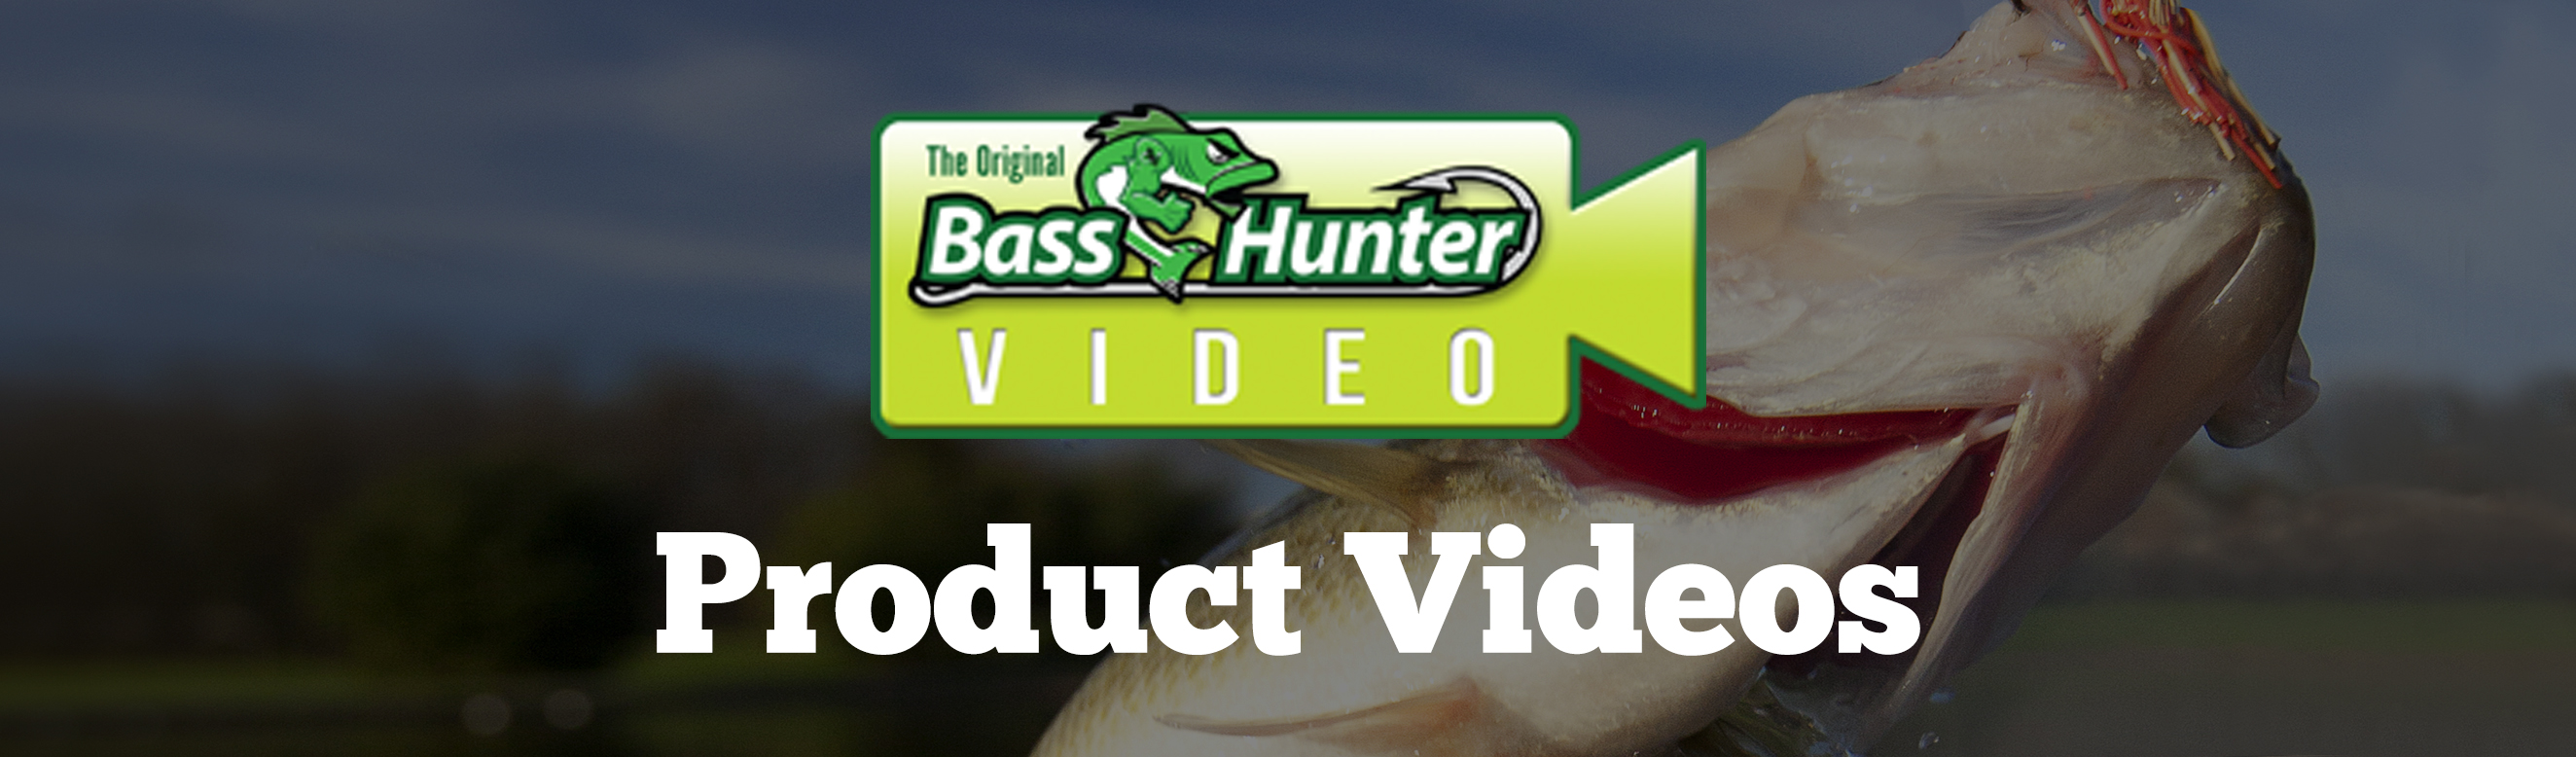 Product Video Header